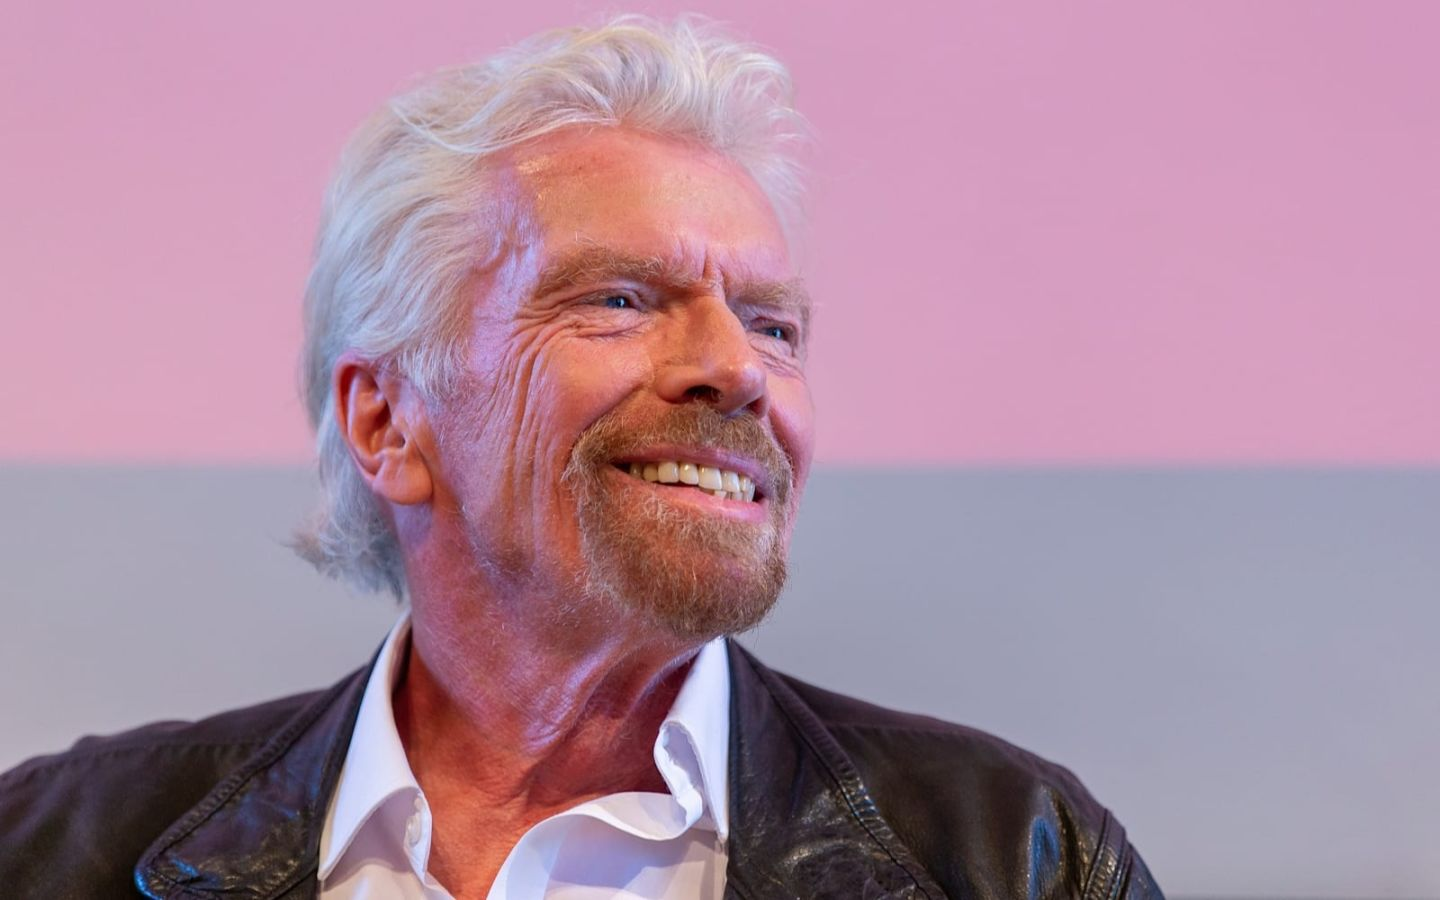 Richard Branson smiling